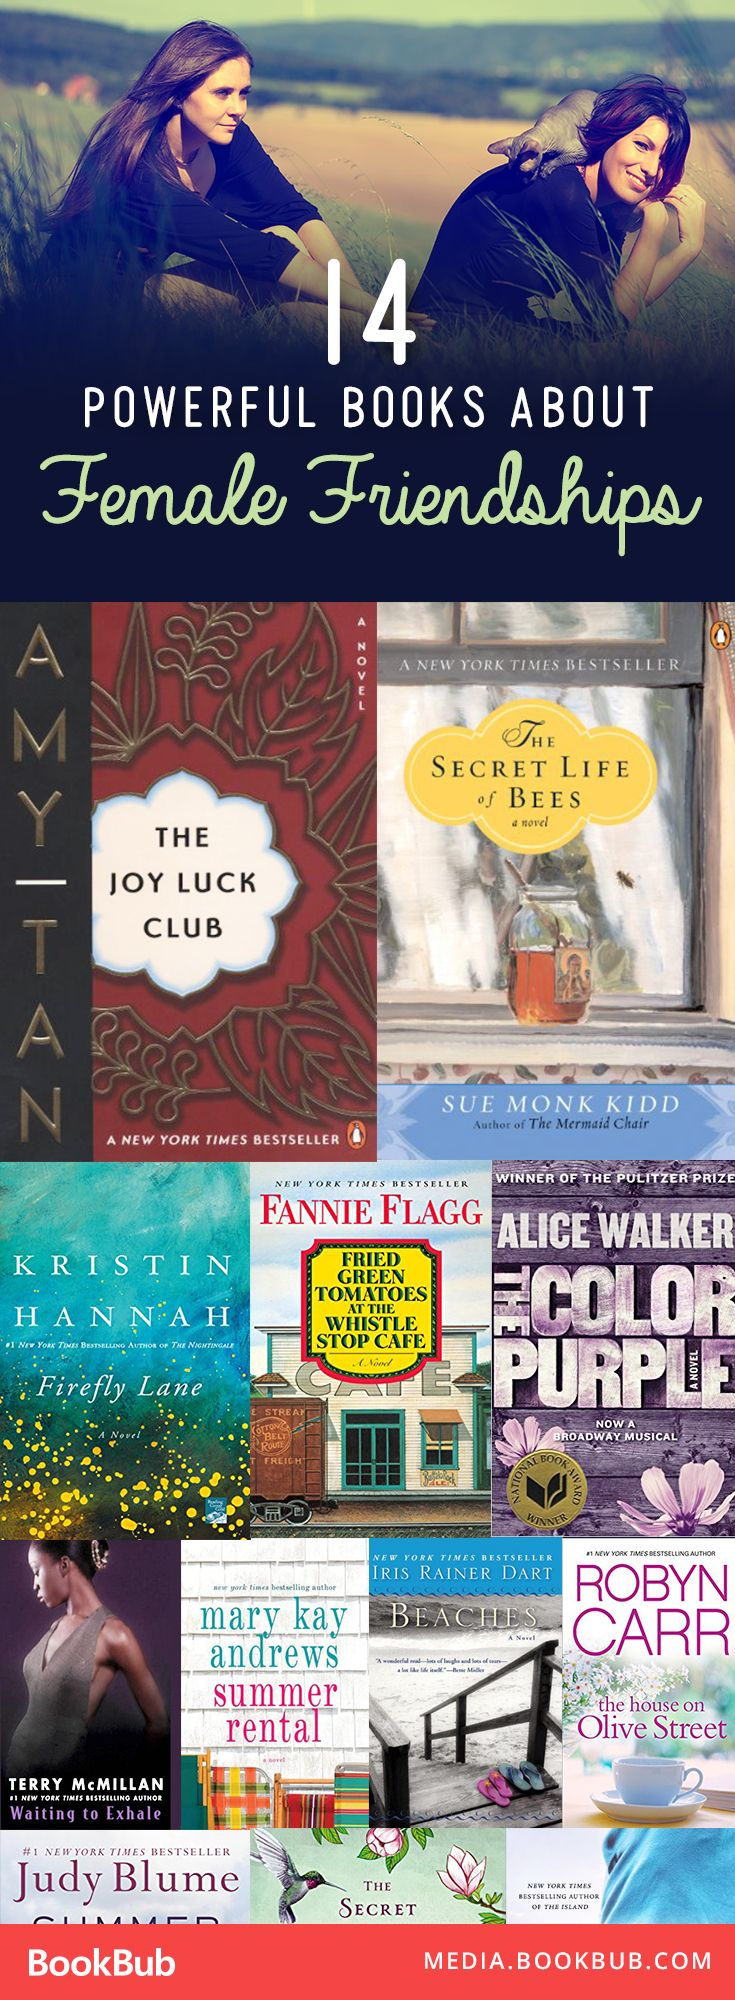 14 must-read books for women about the power of female friendship.